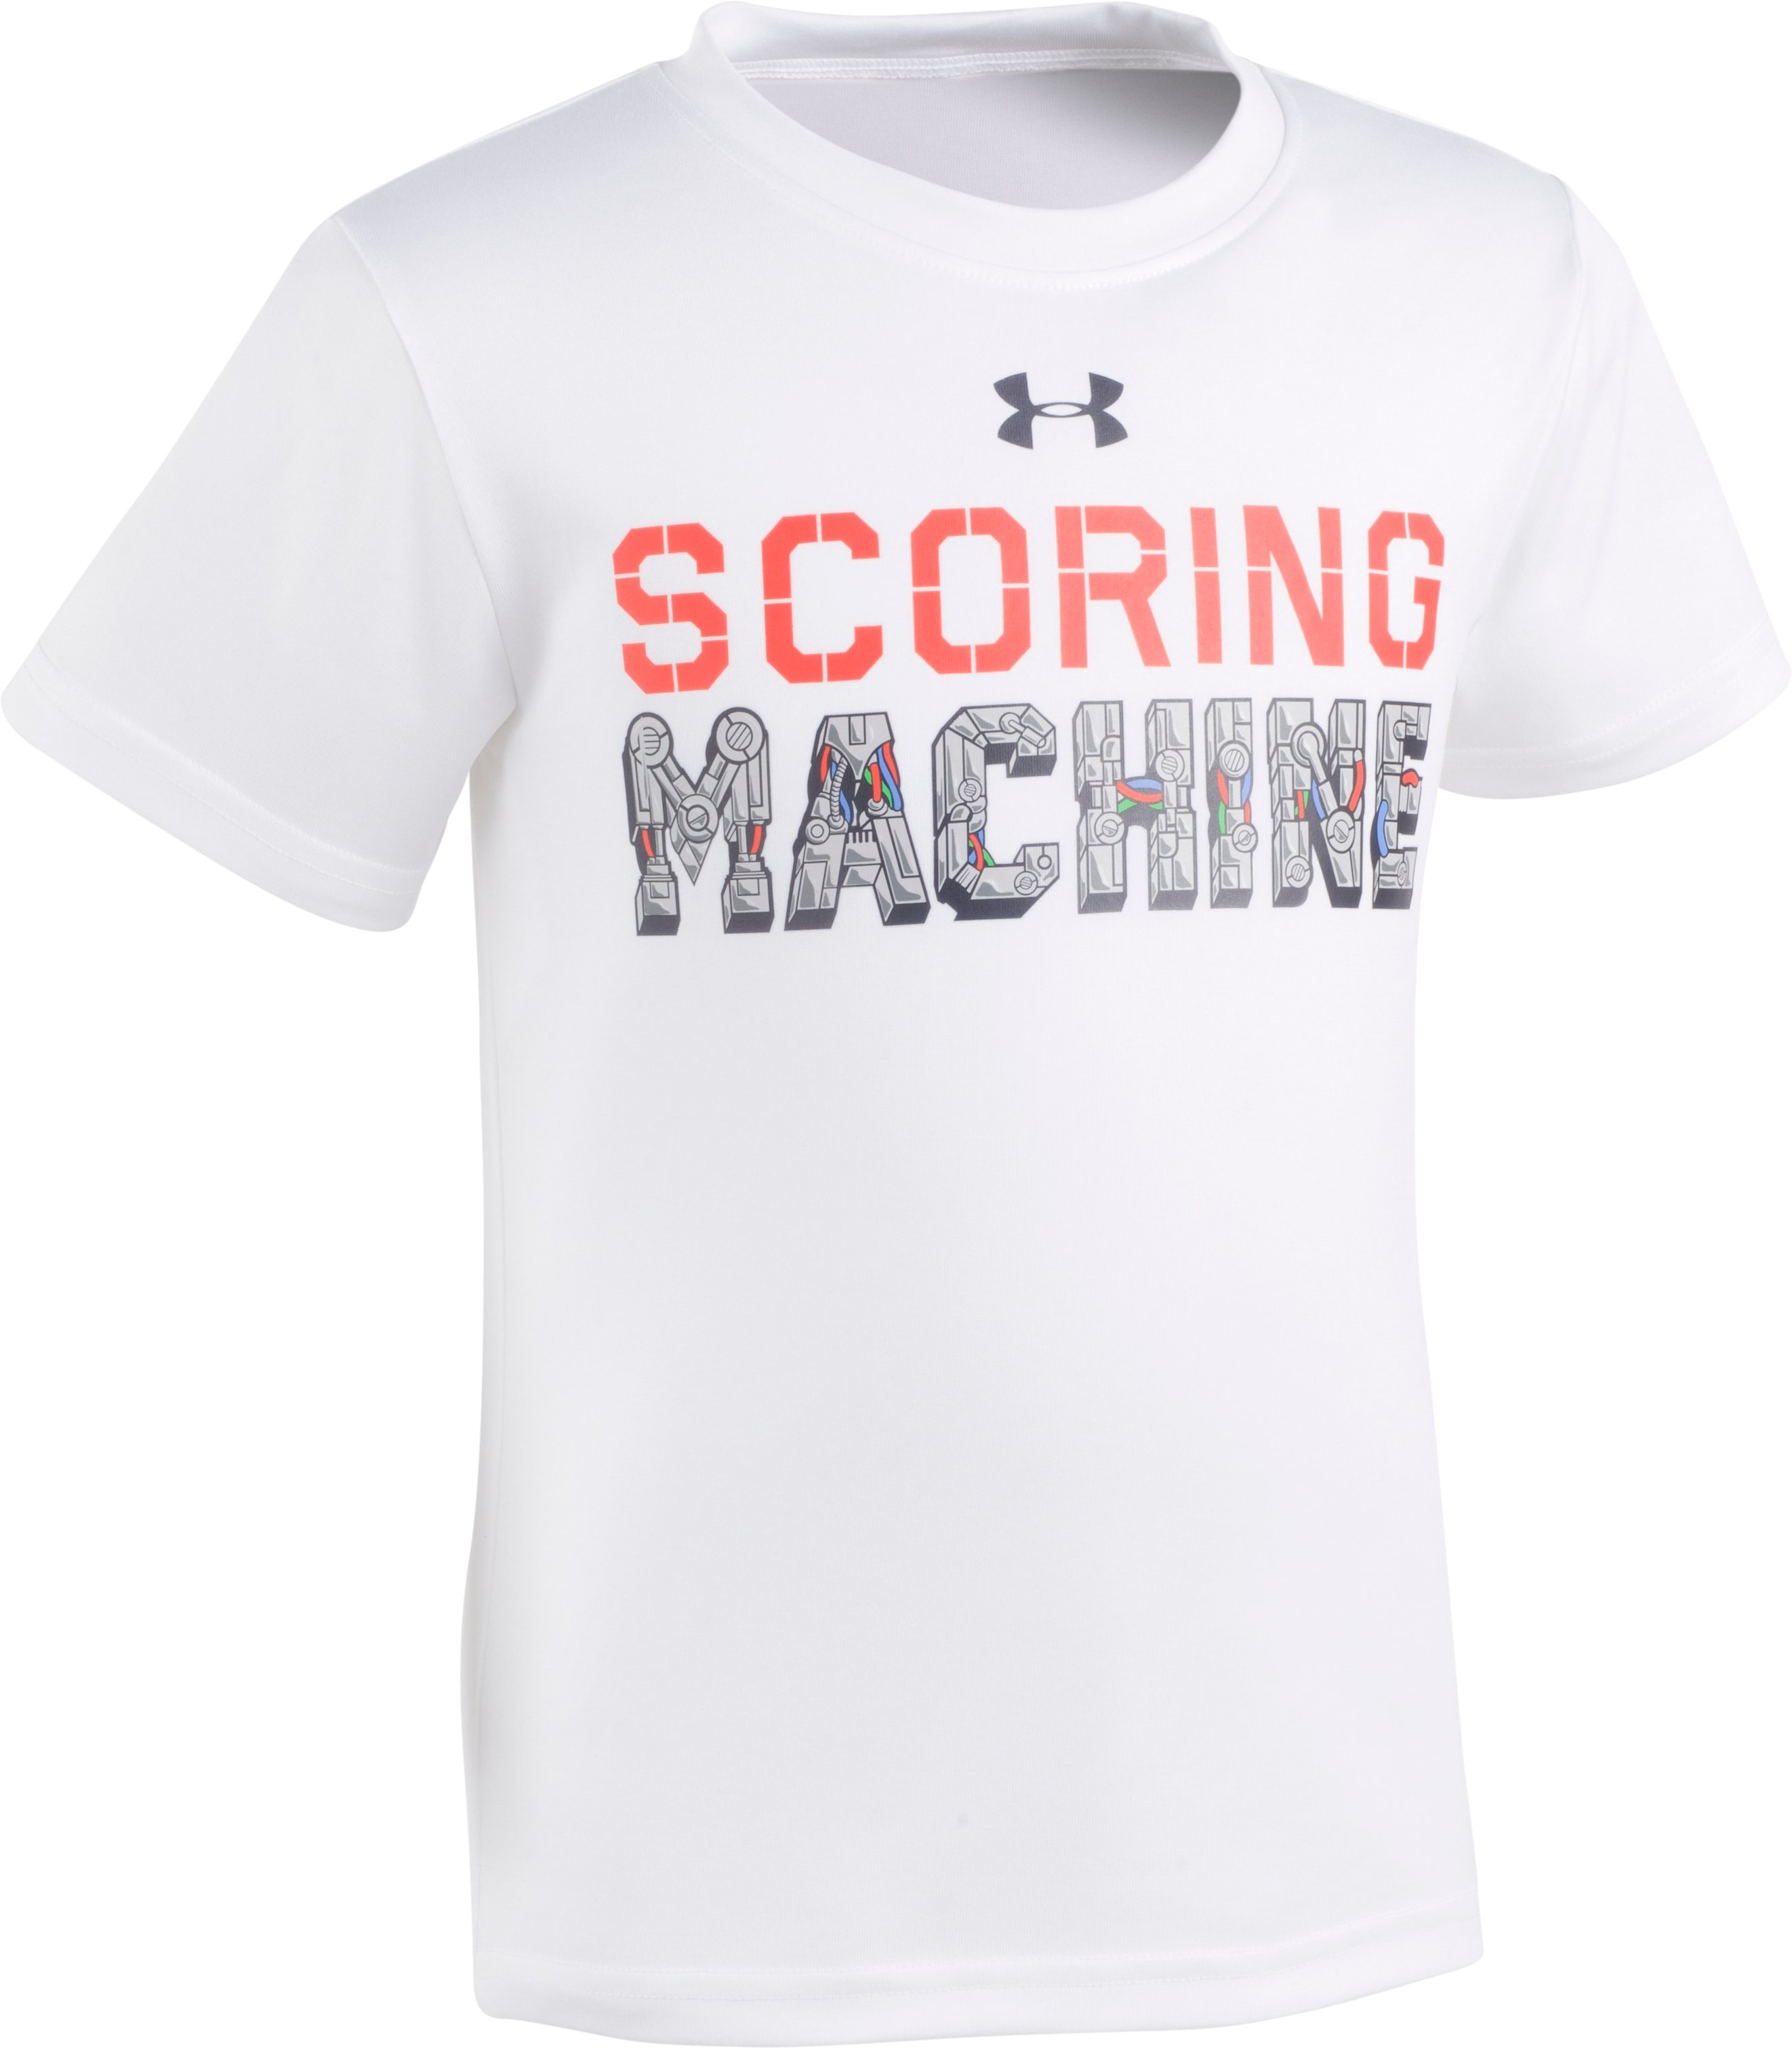 Boys' Pre-School UA Scoring Machine Short Sleeve Shirt, White, Laydown